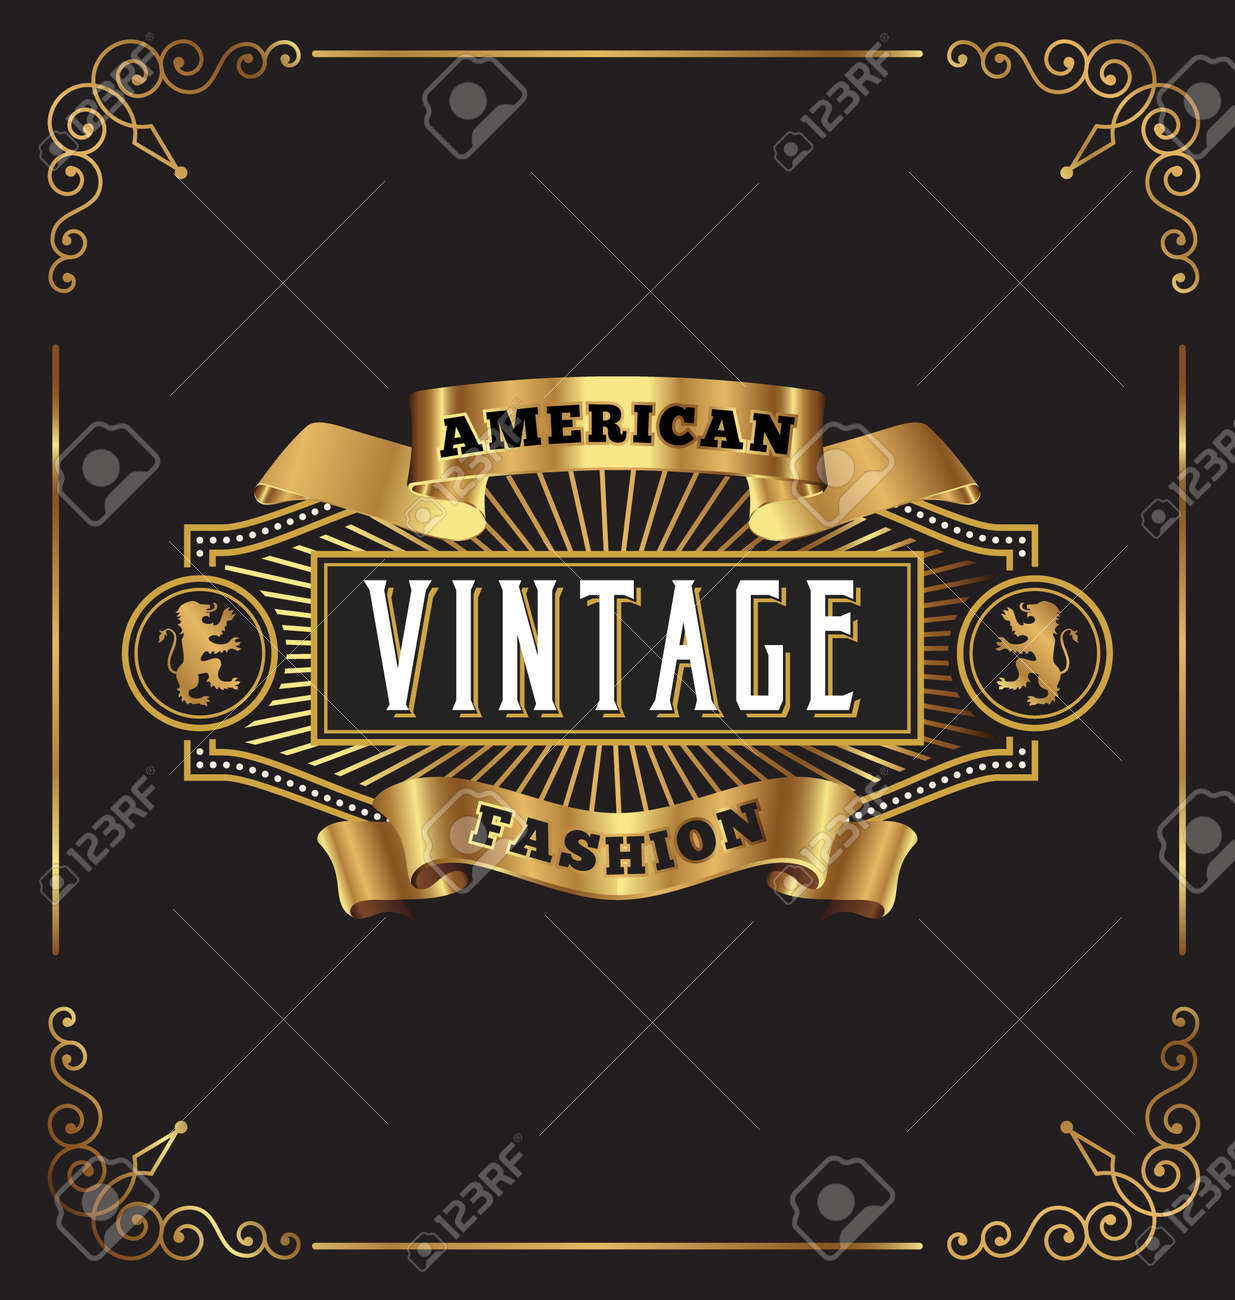 Vintage frame label design. Suitable for Whiskey, Jewelry, Hotel, Coffee shop, Restaurant, Barber, Premium business. - 46958214